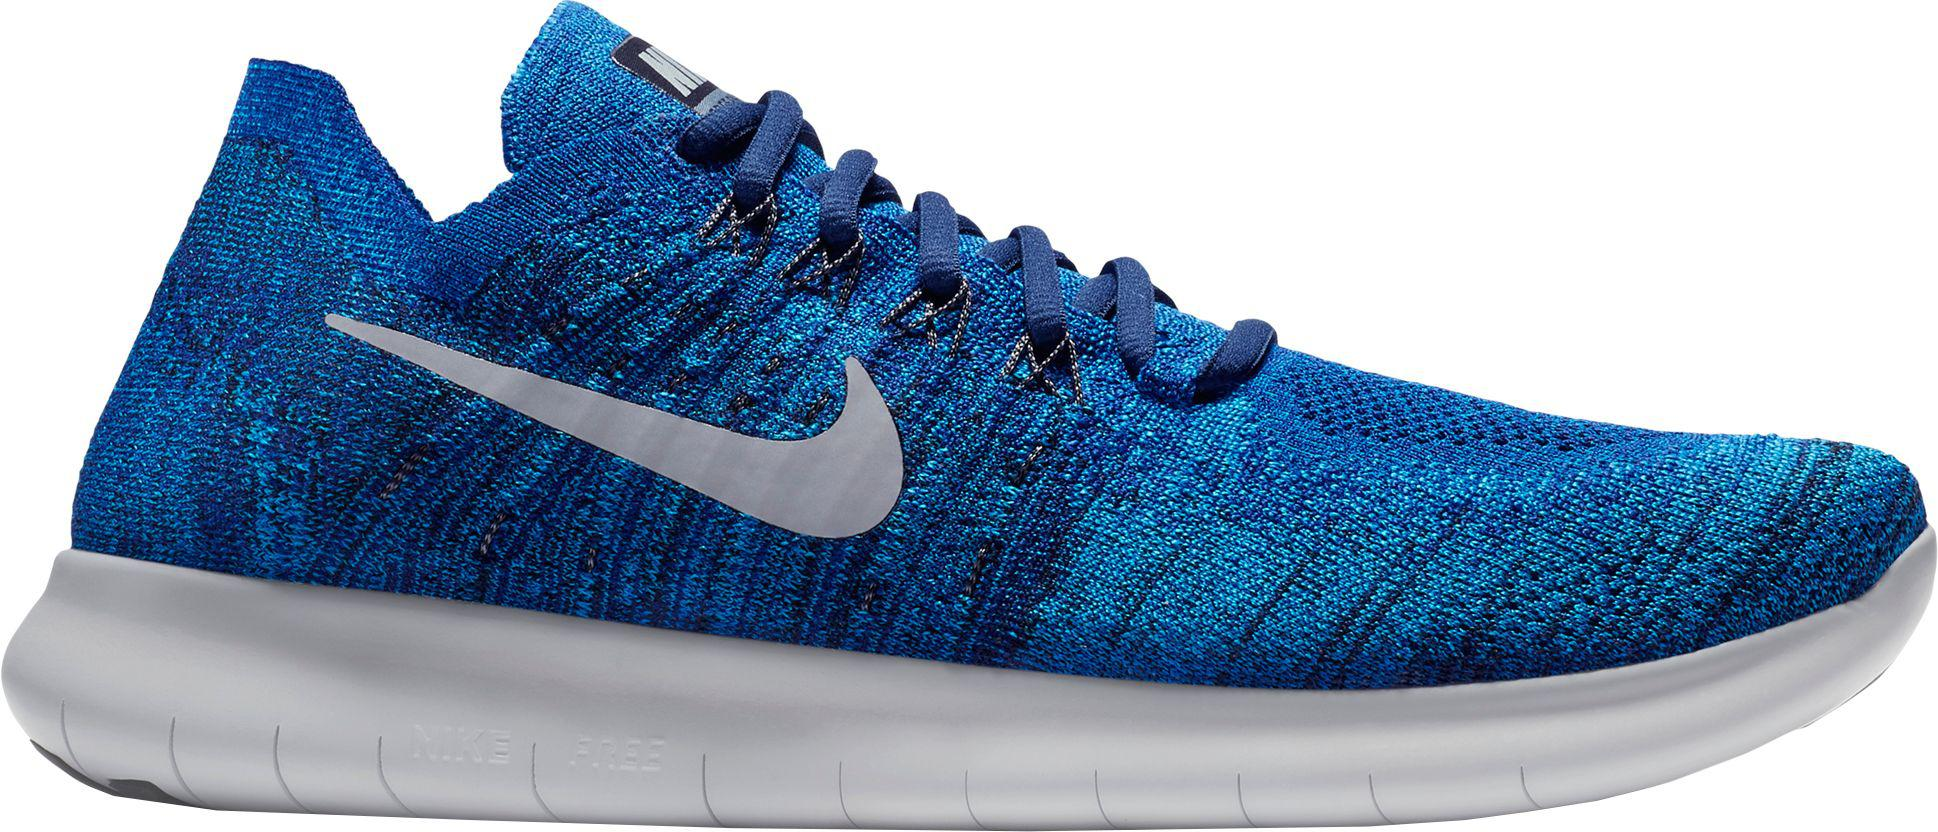 d0453394f87 ... hot nike blue free rn flyknit 2017 running shoes for men lyst f4dfc  5969c ...